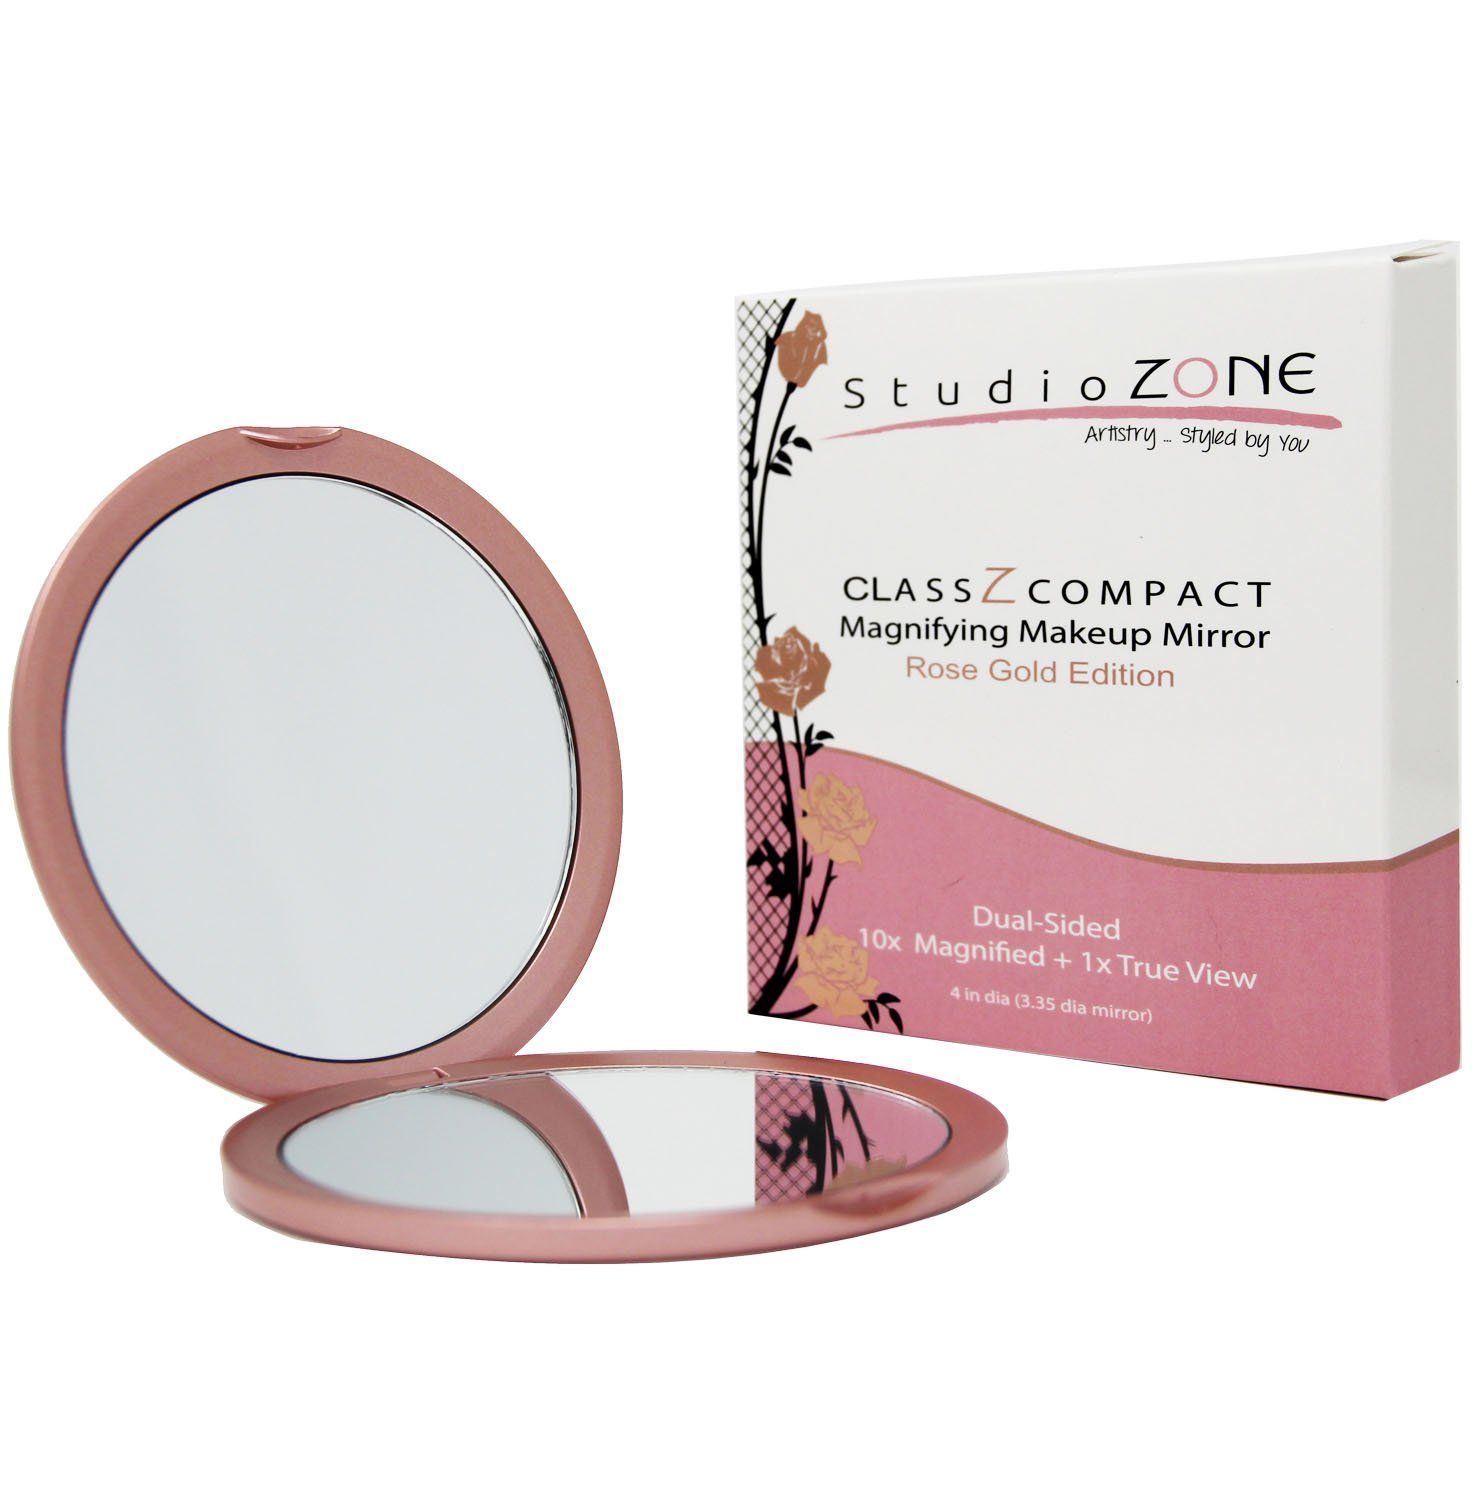 COMPACT MIRROR - 10X MAGNIFYING MakeUp Mirror - Perfect for Purses - Travel - 2-sided with 10X Magnifying Mirror and 1x Mirror - ClassZ Compact Mirror - Rose Gold Edition